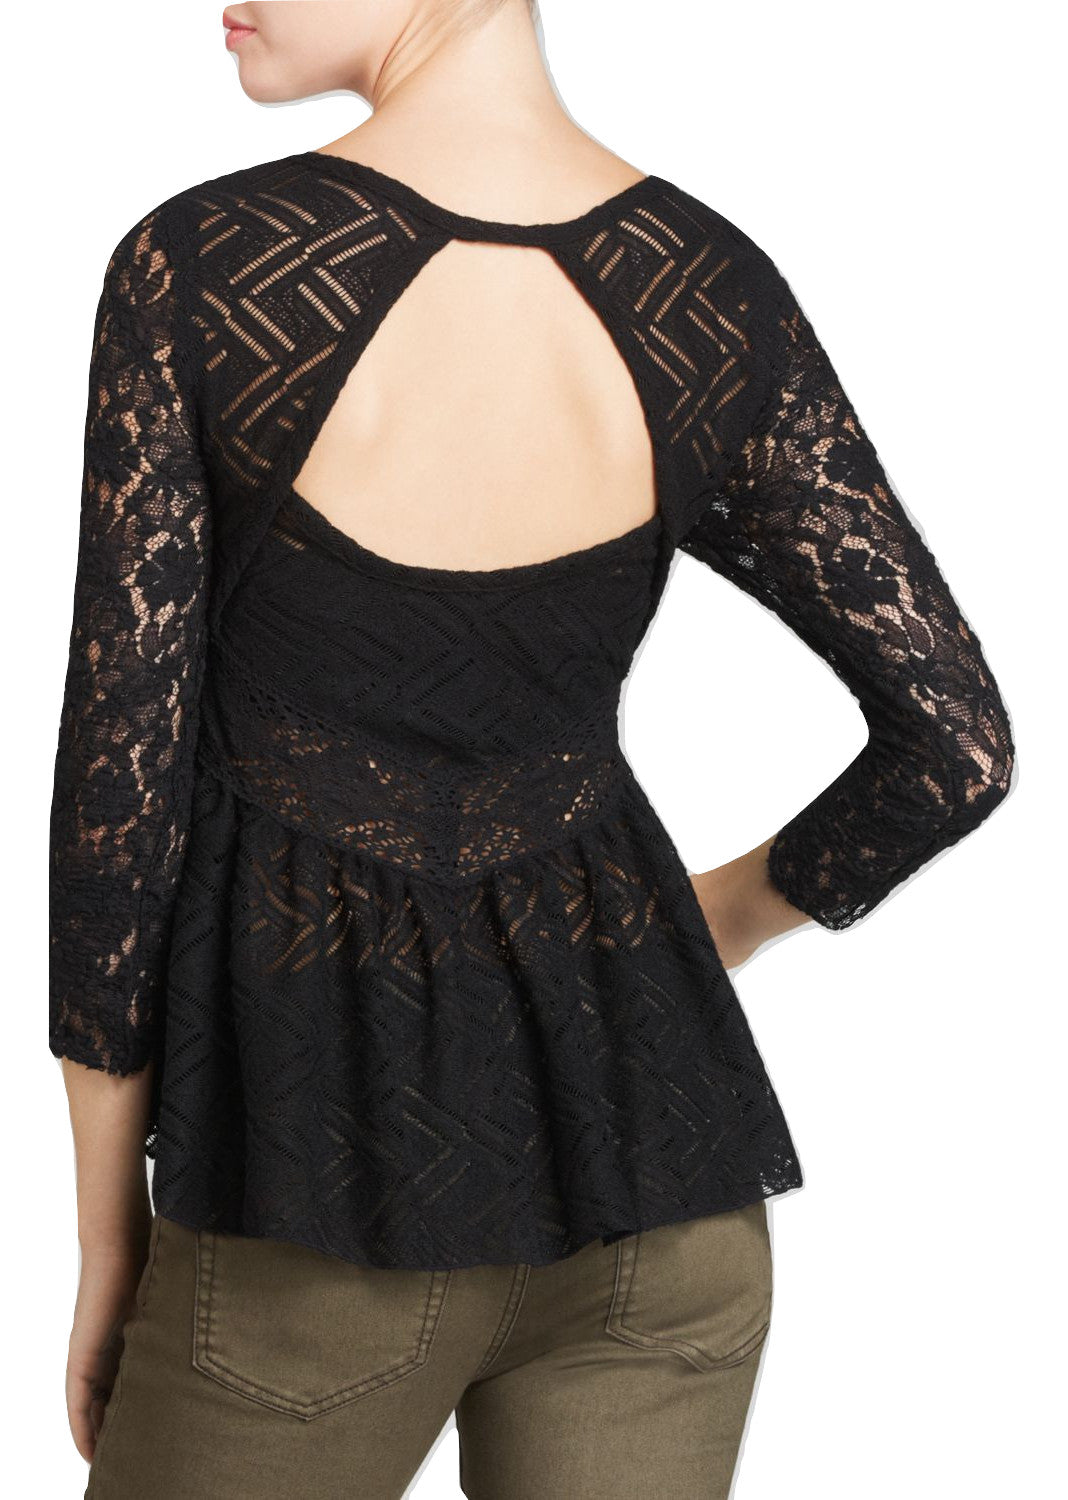 Free People Gracie Three-Quarter-Sleeve Top Black XS - Gear Relapse